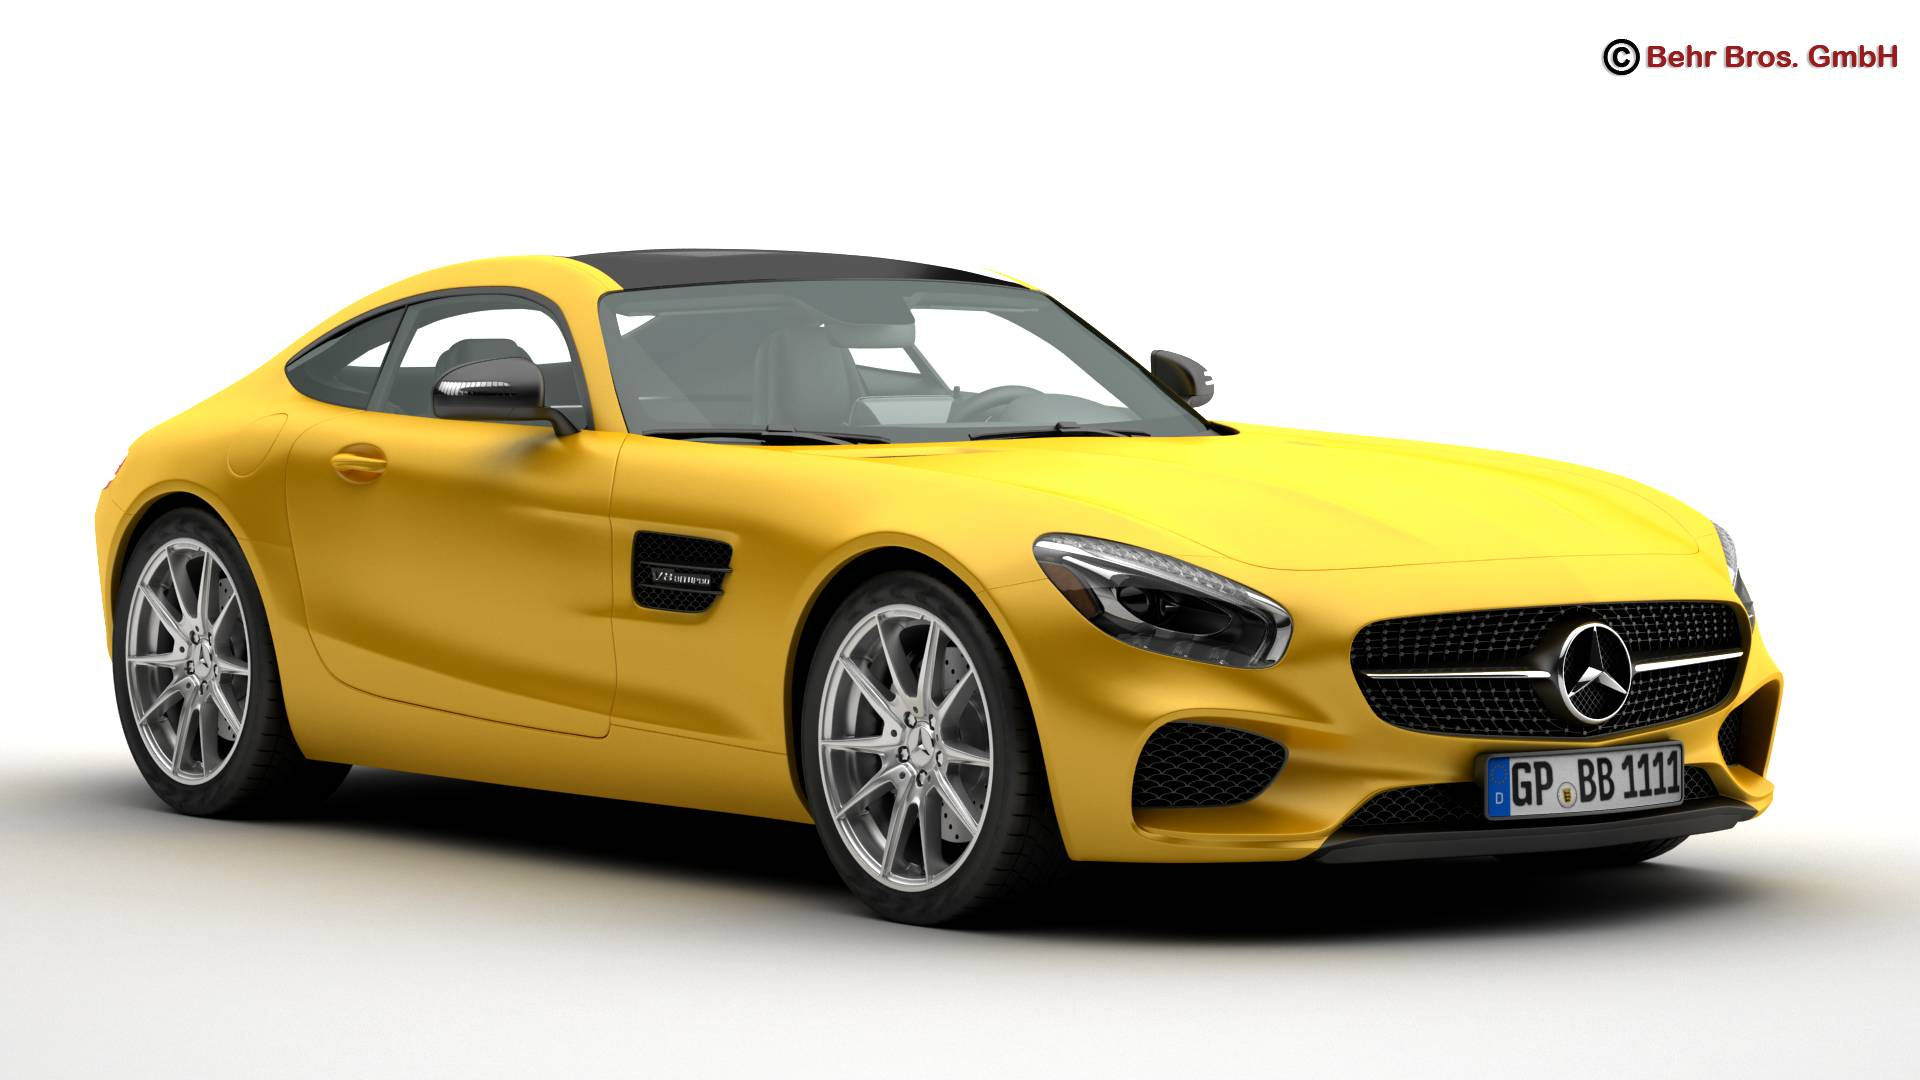 mercedes amg gt 2015 eu and us version 3d model 3ds max fbx c4d lwo ma mb obj 210113